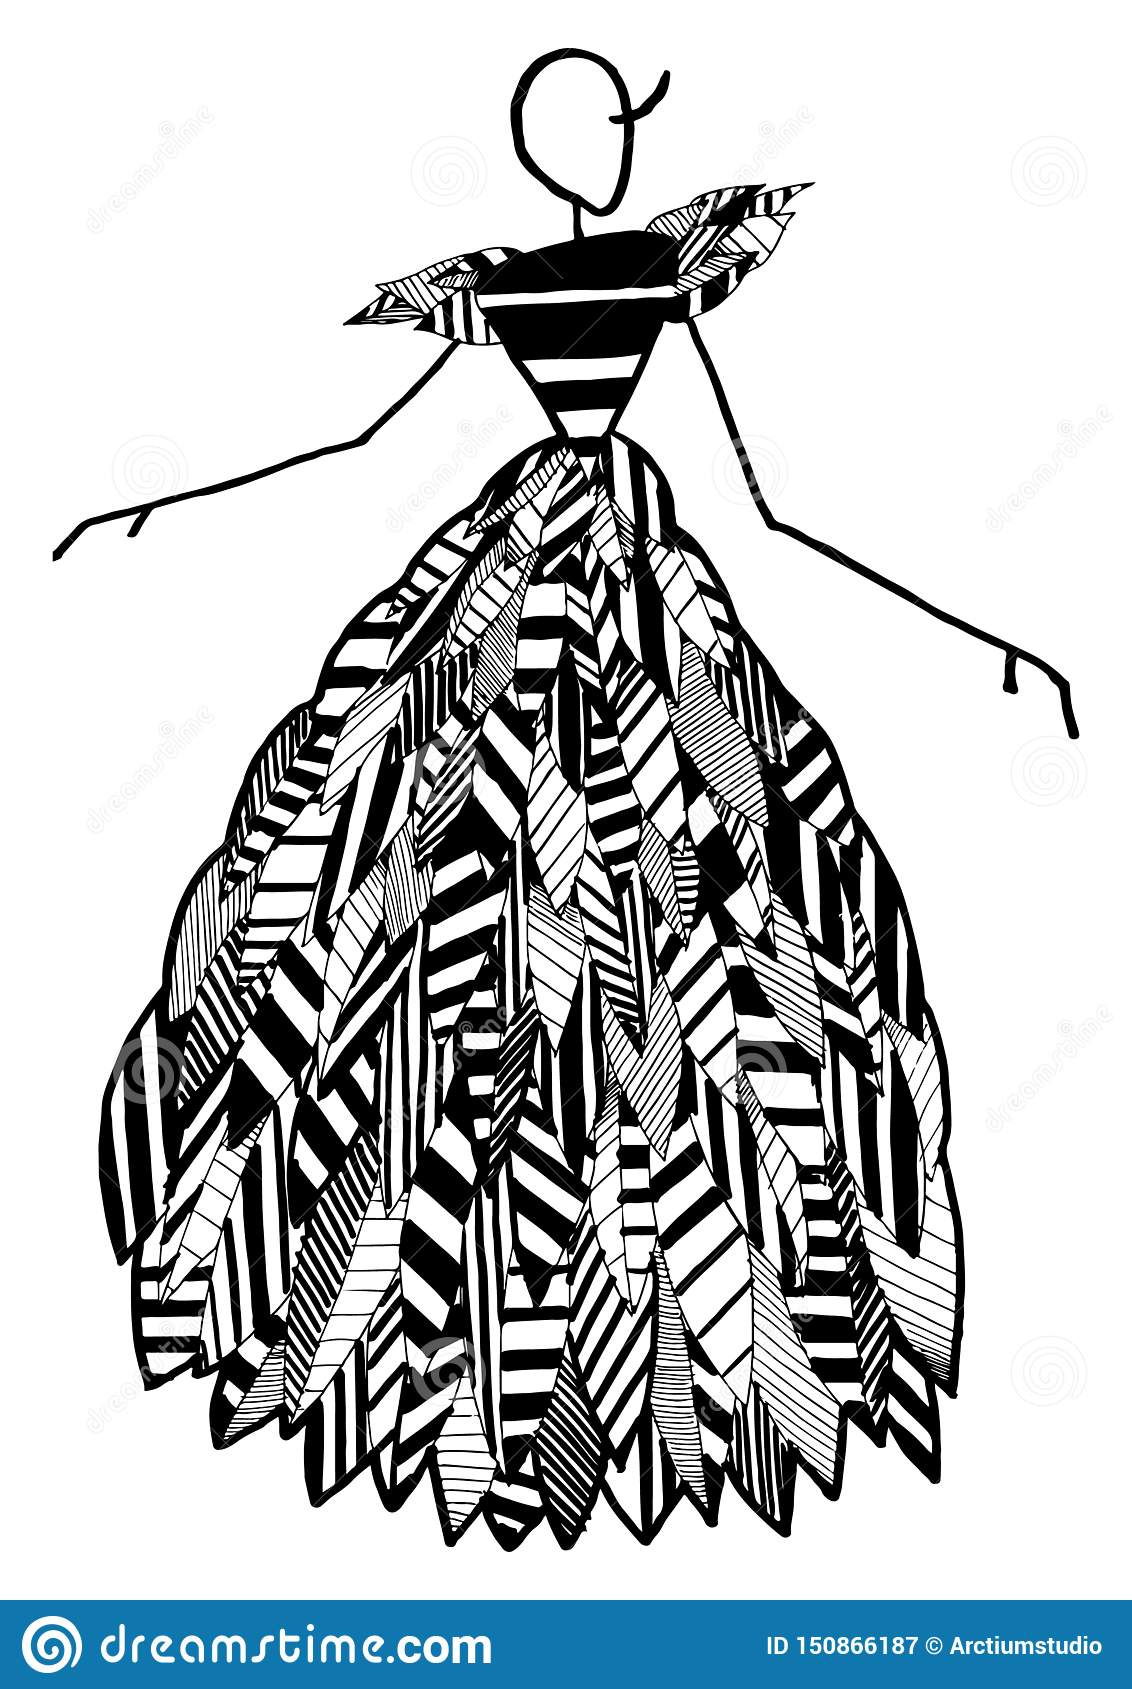 Art Fashion Silhouette Of Costume Posing In Style Abstract Pattern With Geometric Elements Mannequin Costume Shape Isolated Art Stock Illustration Illustration Of Clothing Elegance 150866187